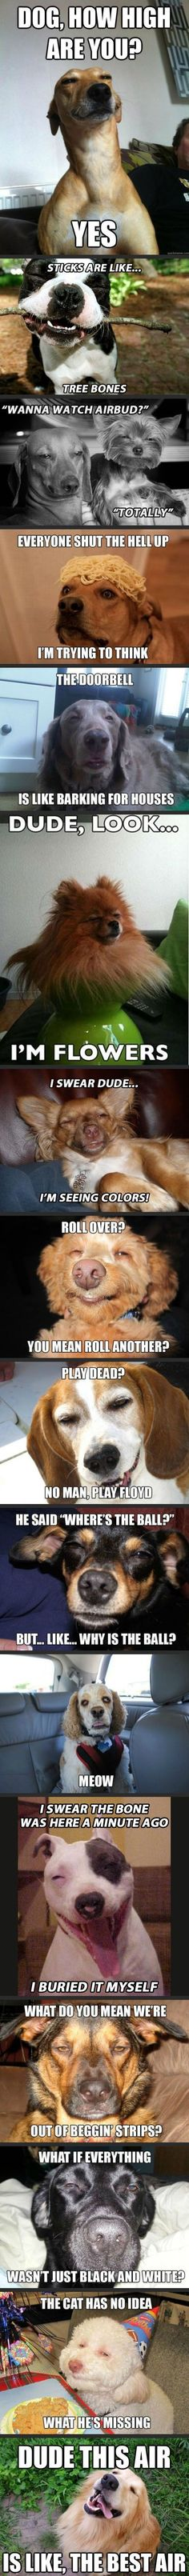 High dogs funniest thing ever